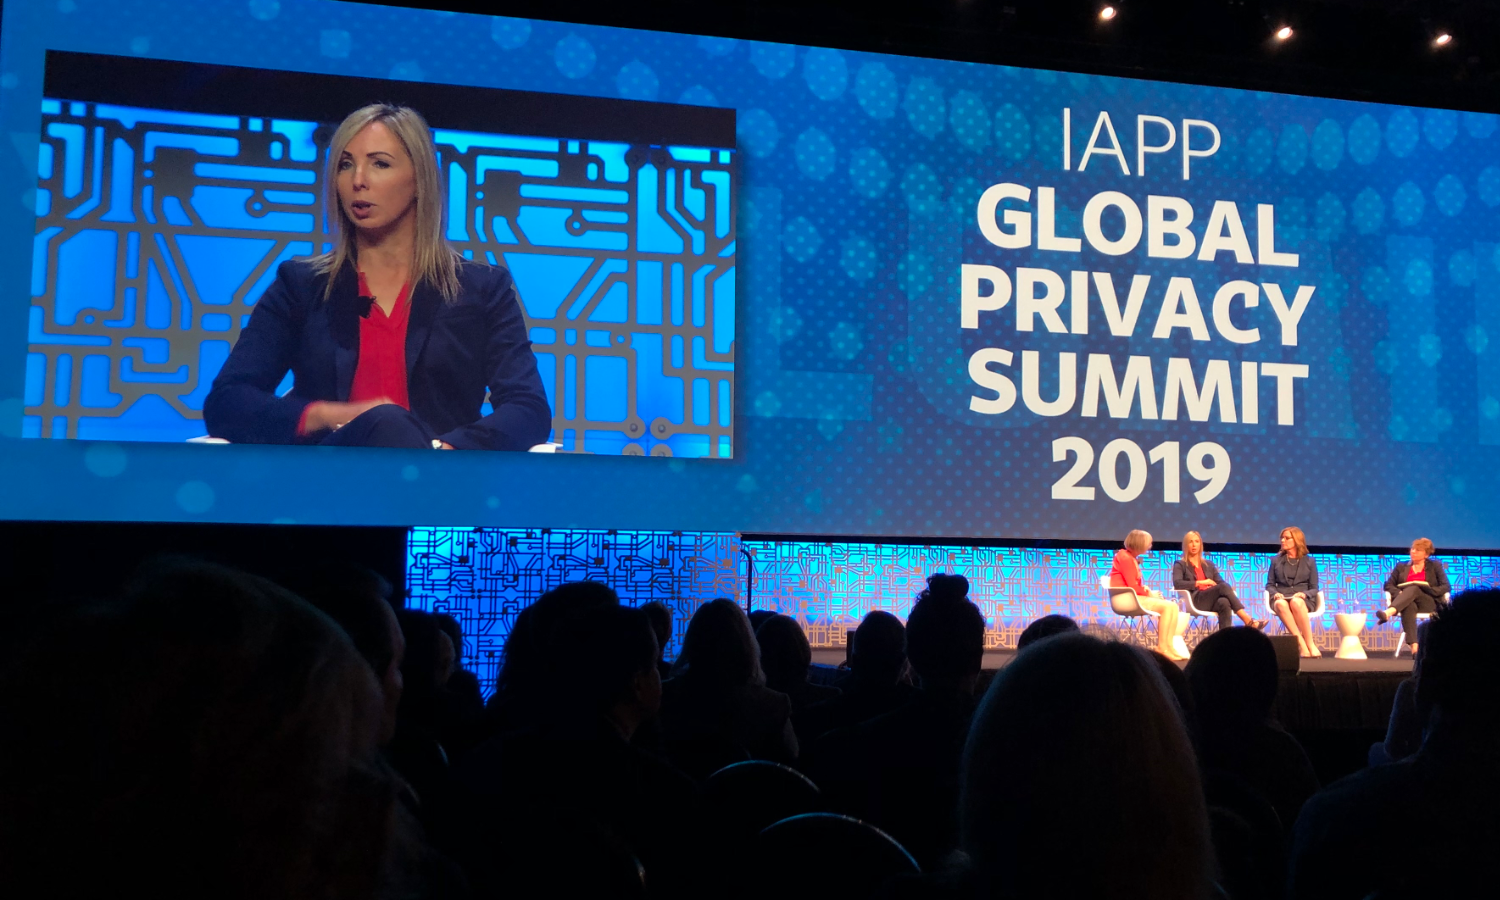 Ireland Data Protection Commissioner Helen Dixon speaking at the IAPP Global Privacy Summit 2019.